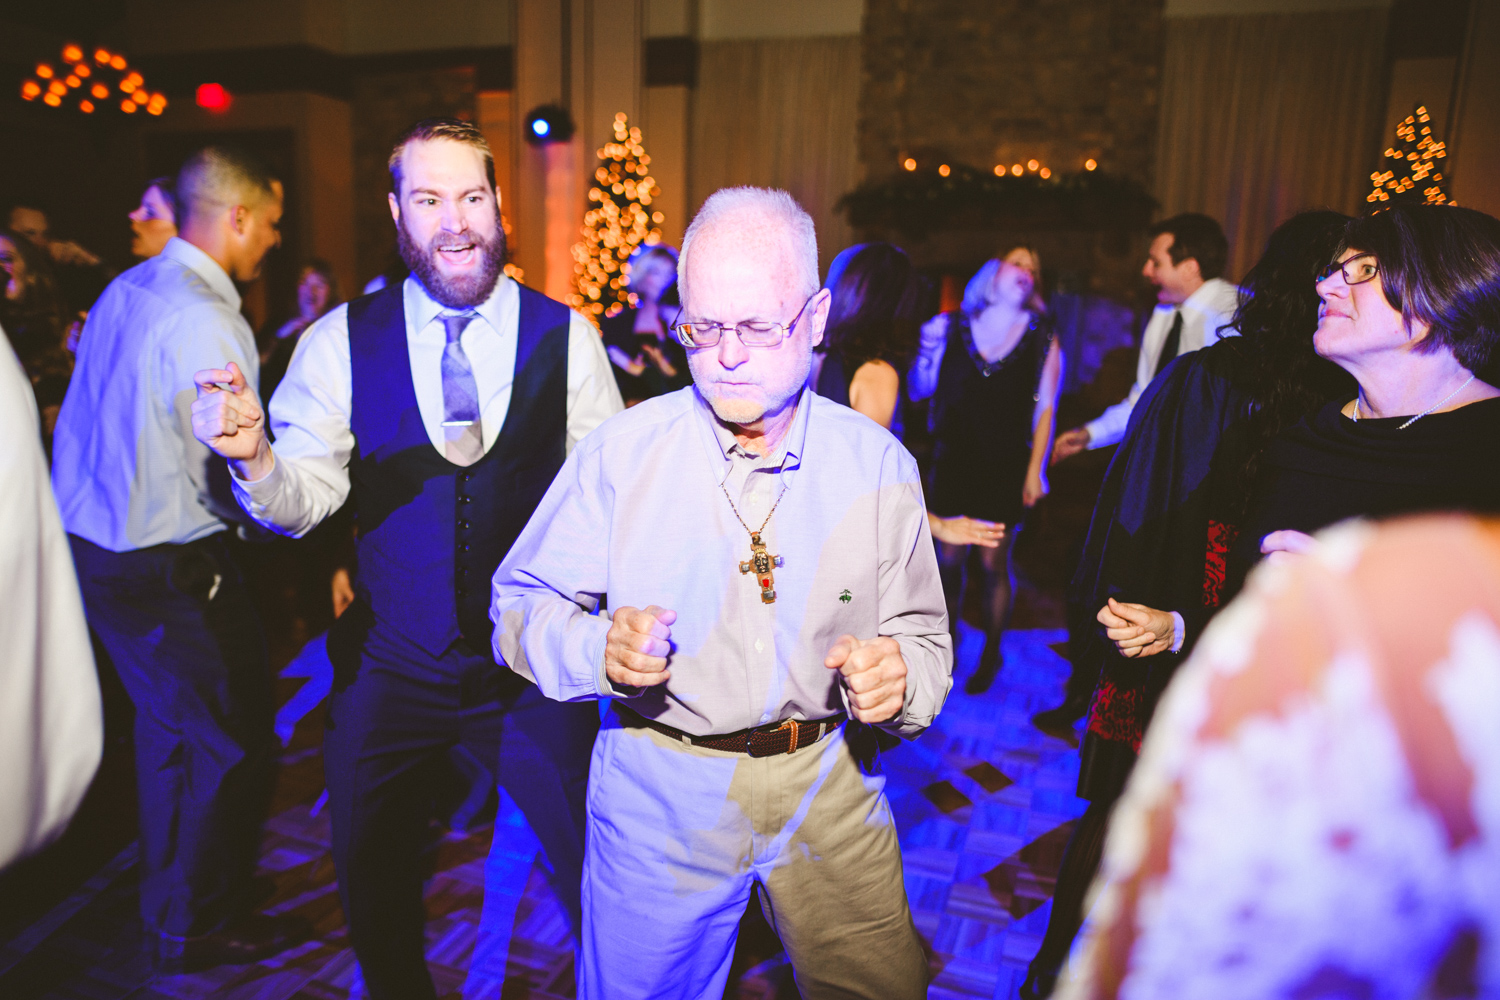 045 - father of the groom getting down and dancing.jpg